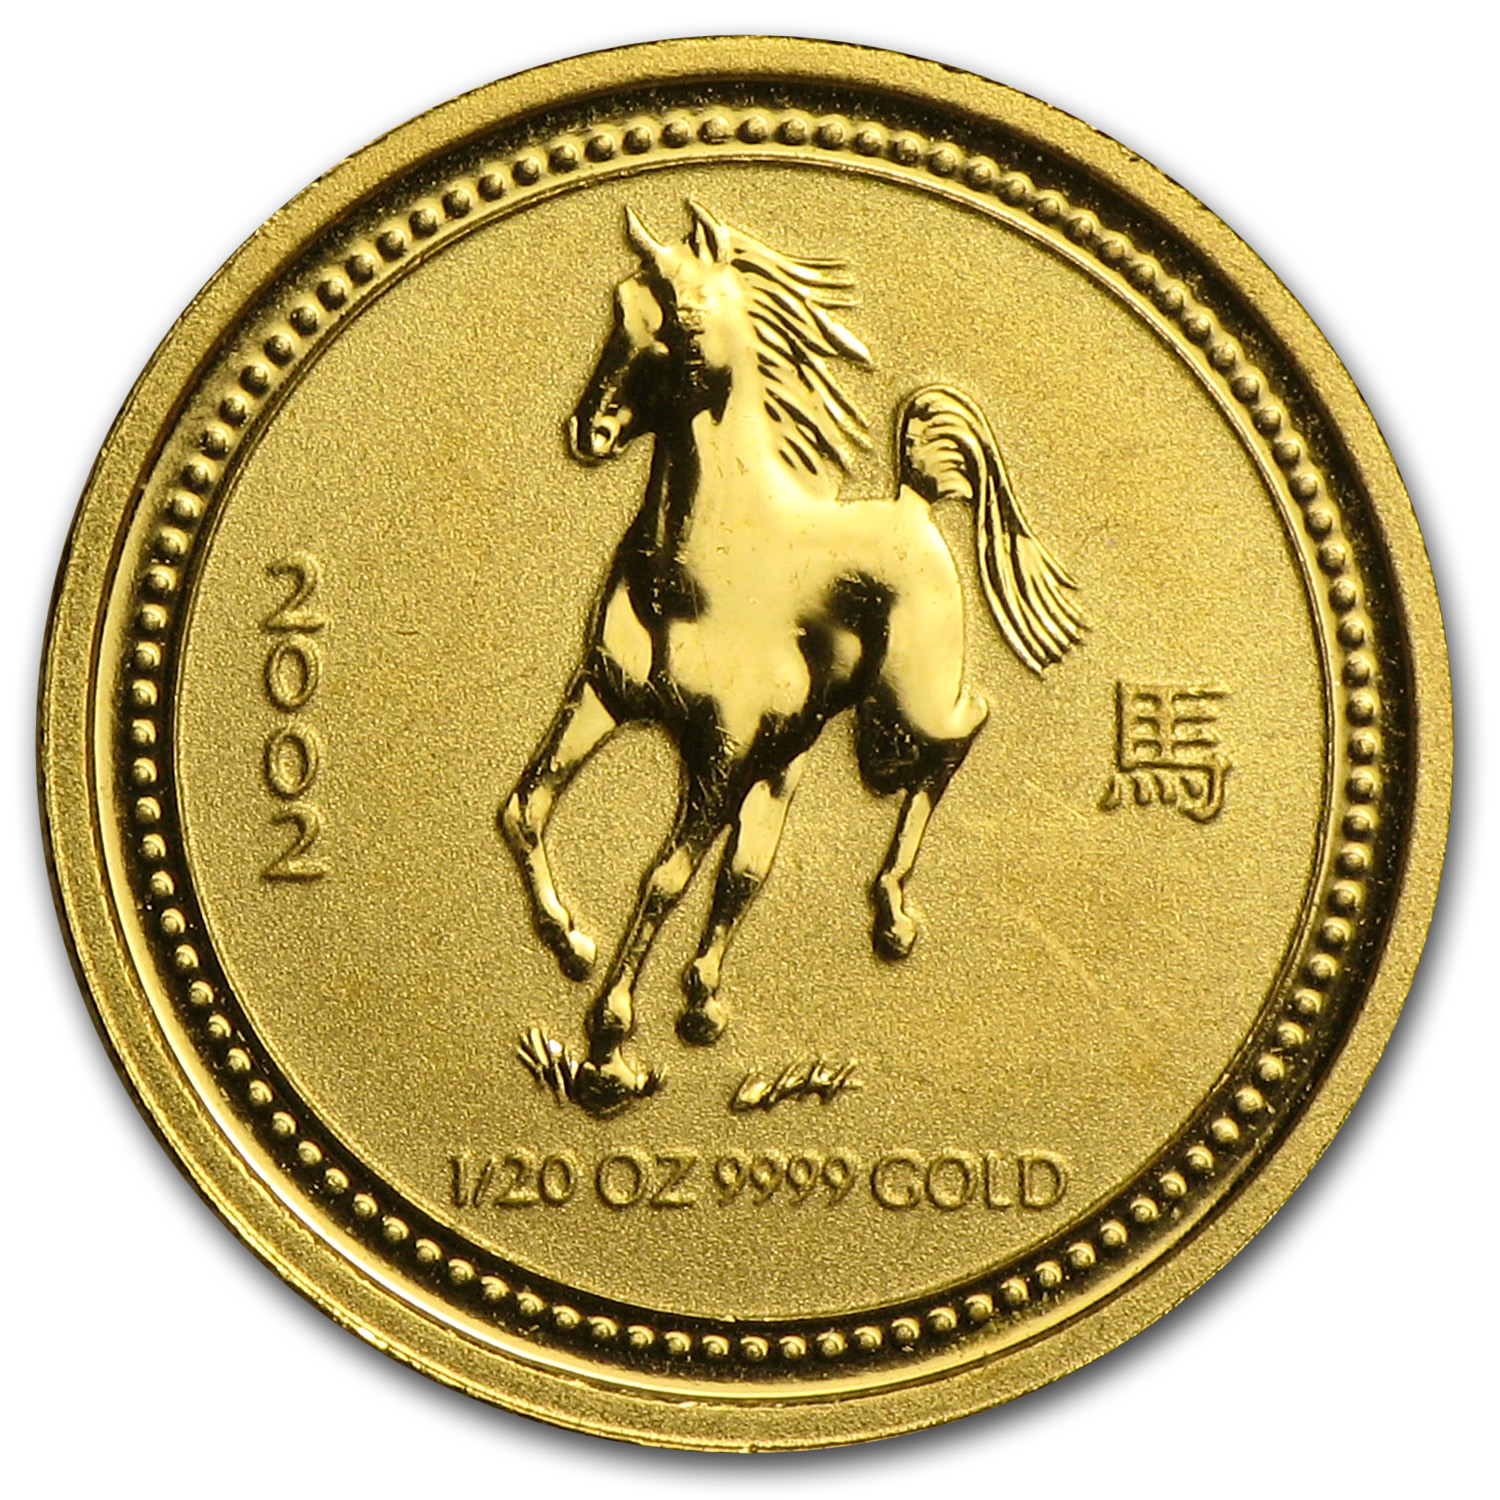 2002 1/20 oz Gold Year of the Horse Coin SI (Light Abrasions)